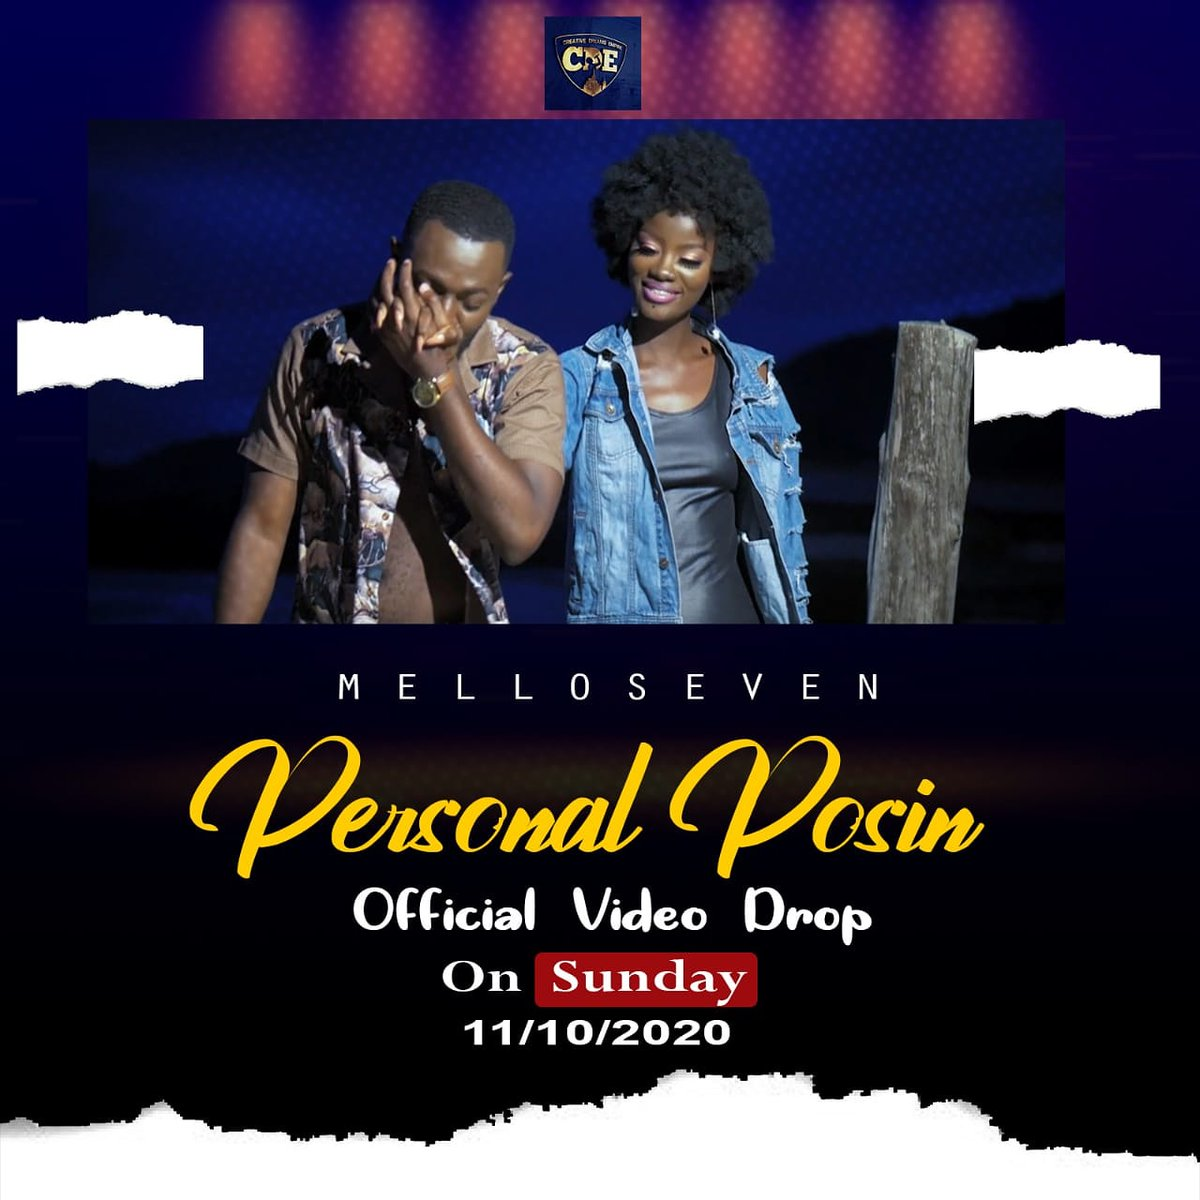 Tomorrow is MelloDay🌟🌟 Grab Your Popcorn n snacks and get set to watch the visuals of #PersonalPosin with your very own #PersonalPosin  #sierraleonetothetop #irepsalone https://t.co/lHiZX0Ncag